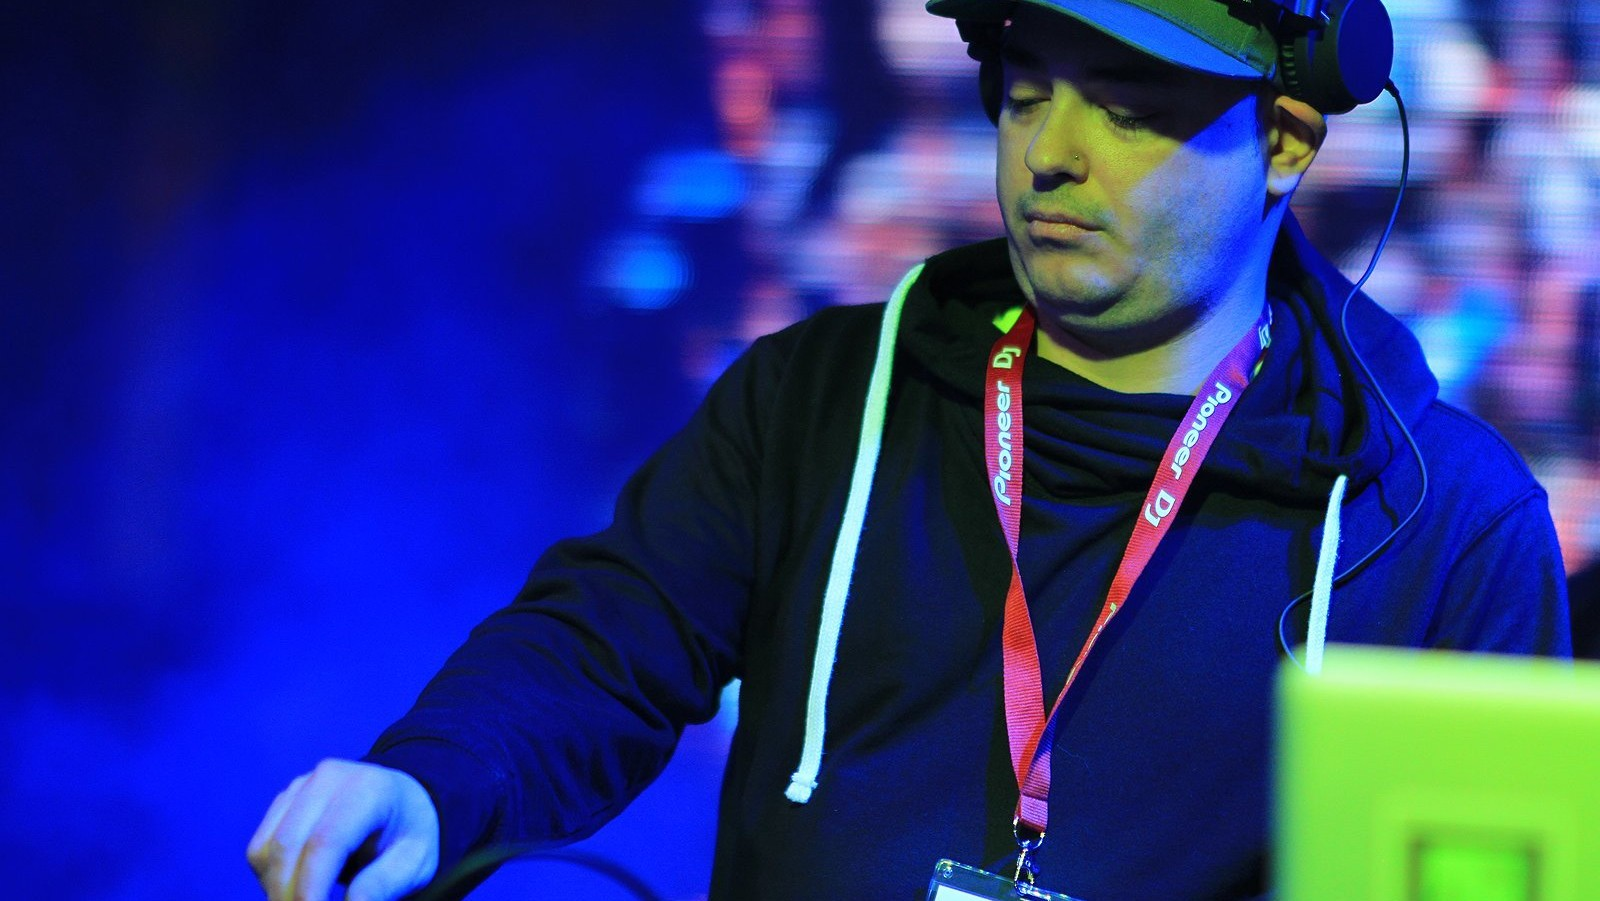 Canada's Largest DJ Trade Show Gave Me a Newfound Respect for Wedding DJs